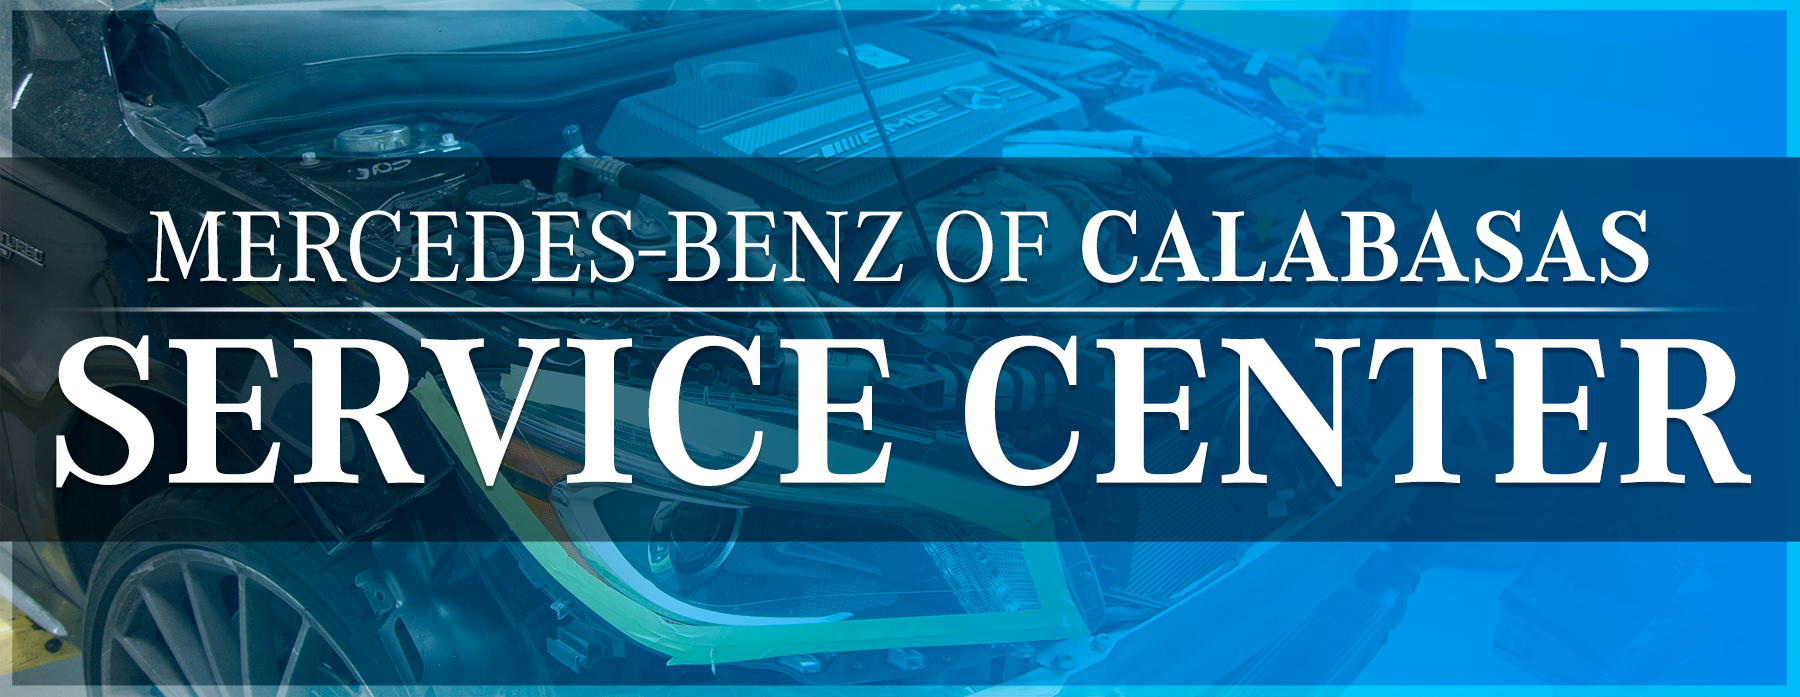 Mercedes benz auto repair service in calabasas la county for Mercedes benz service centre